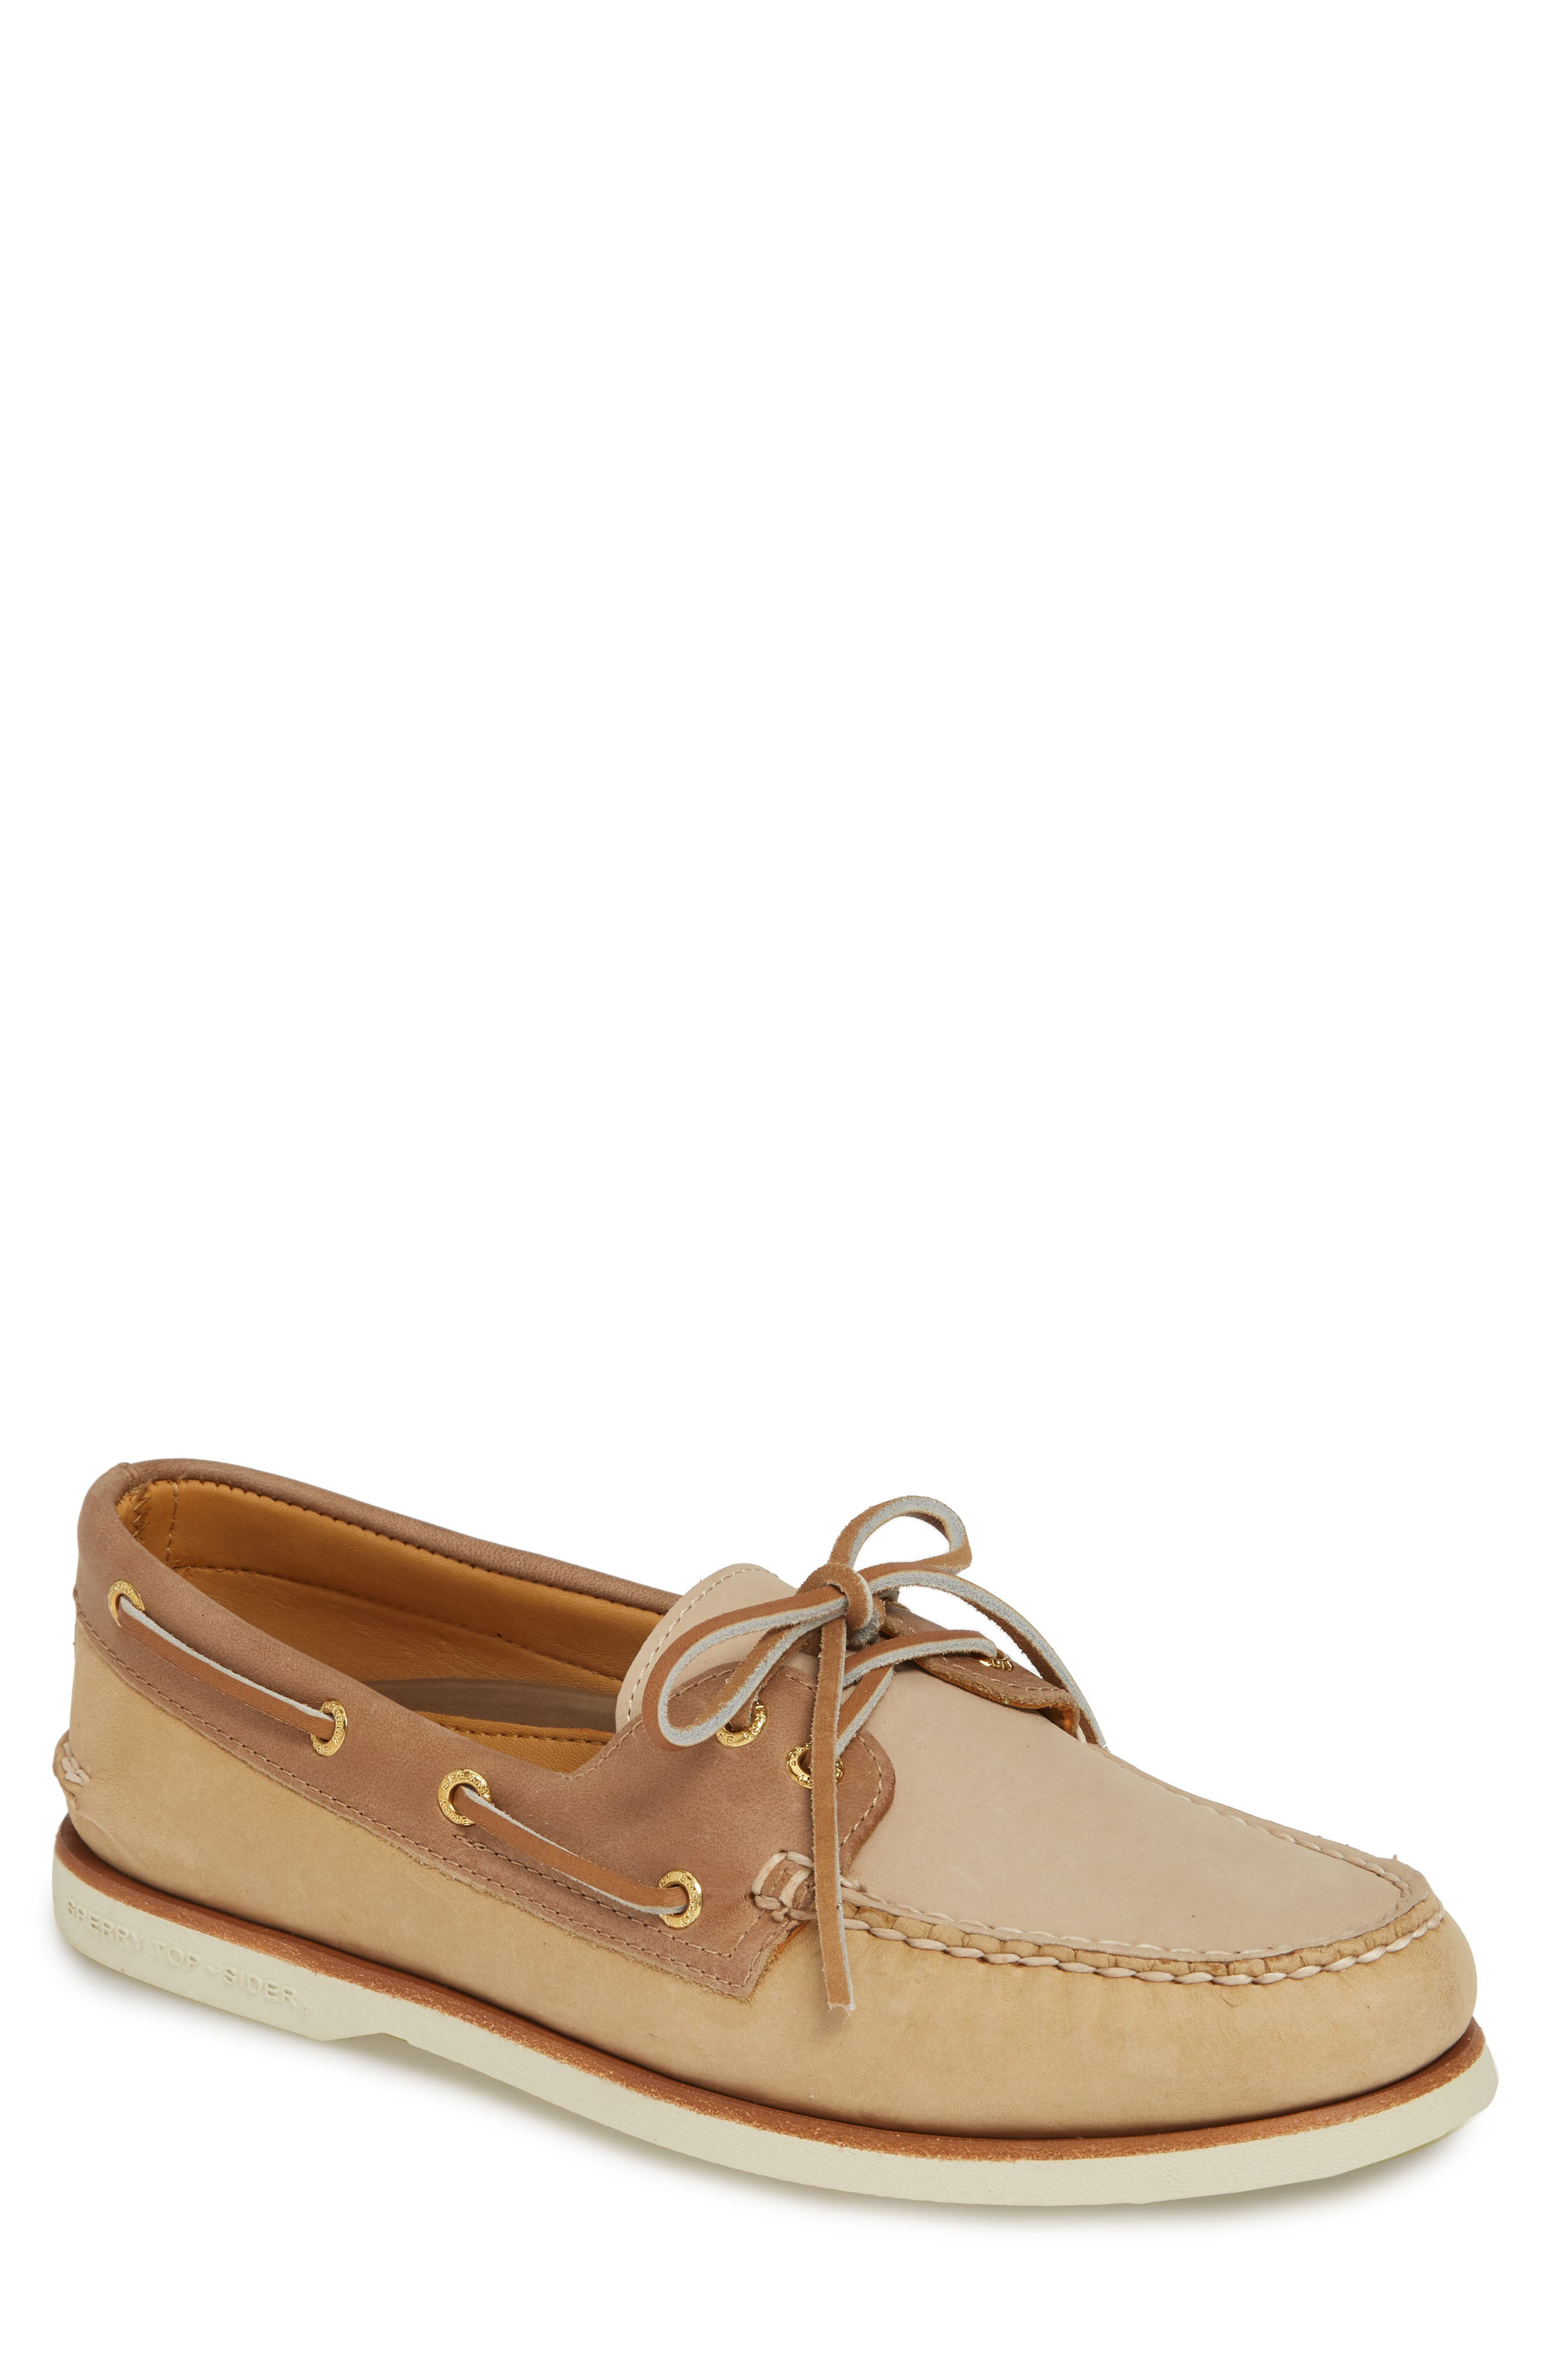 SPERRY Gold Cup Authentic Original Boat Shoe, Main, color, TAN/ BROWN/ CREAM LEATHER